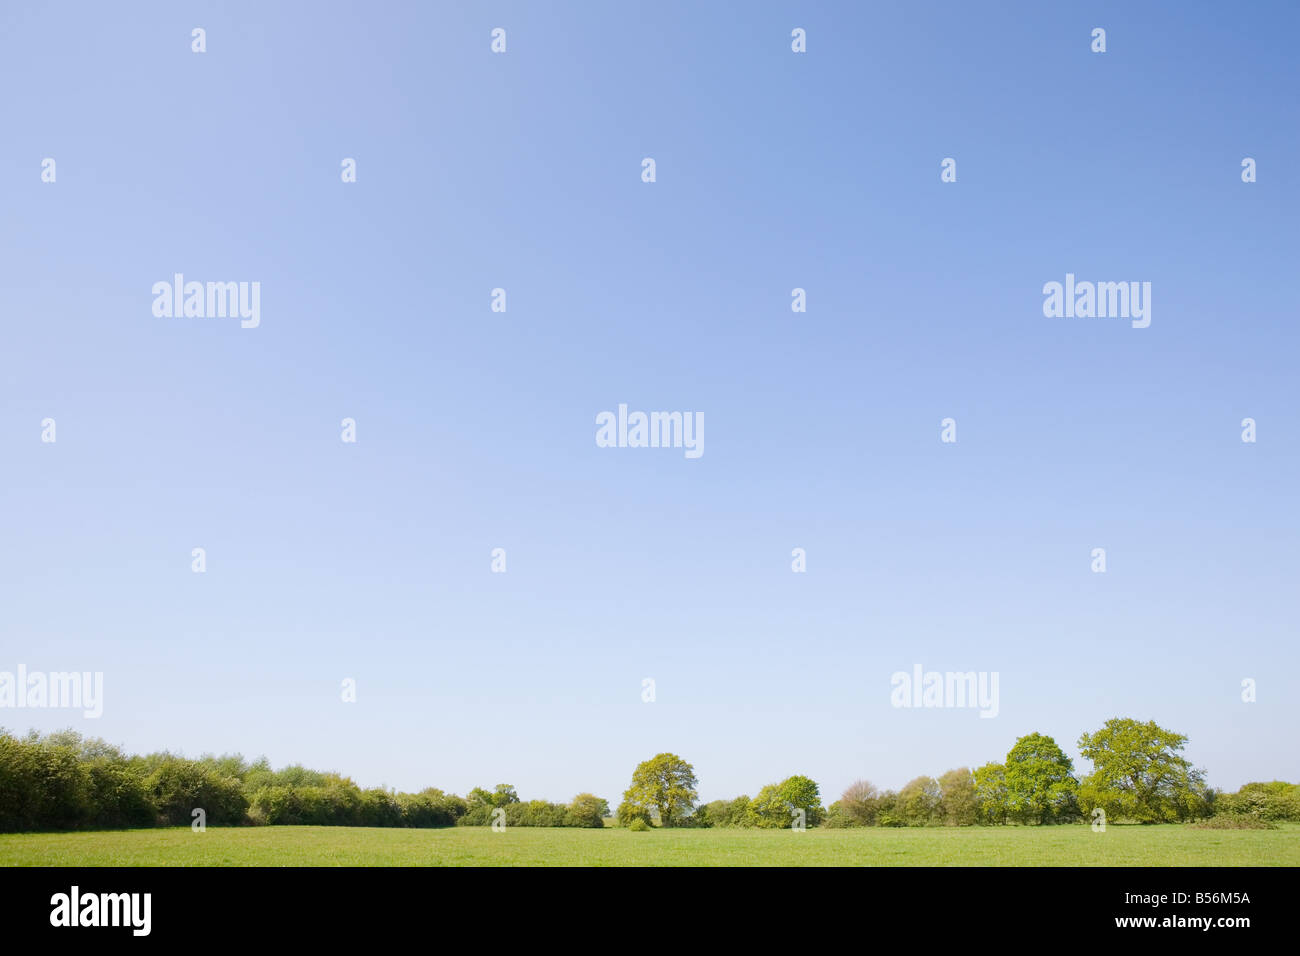 Trees in a field - Stock Image